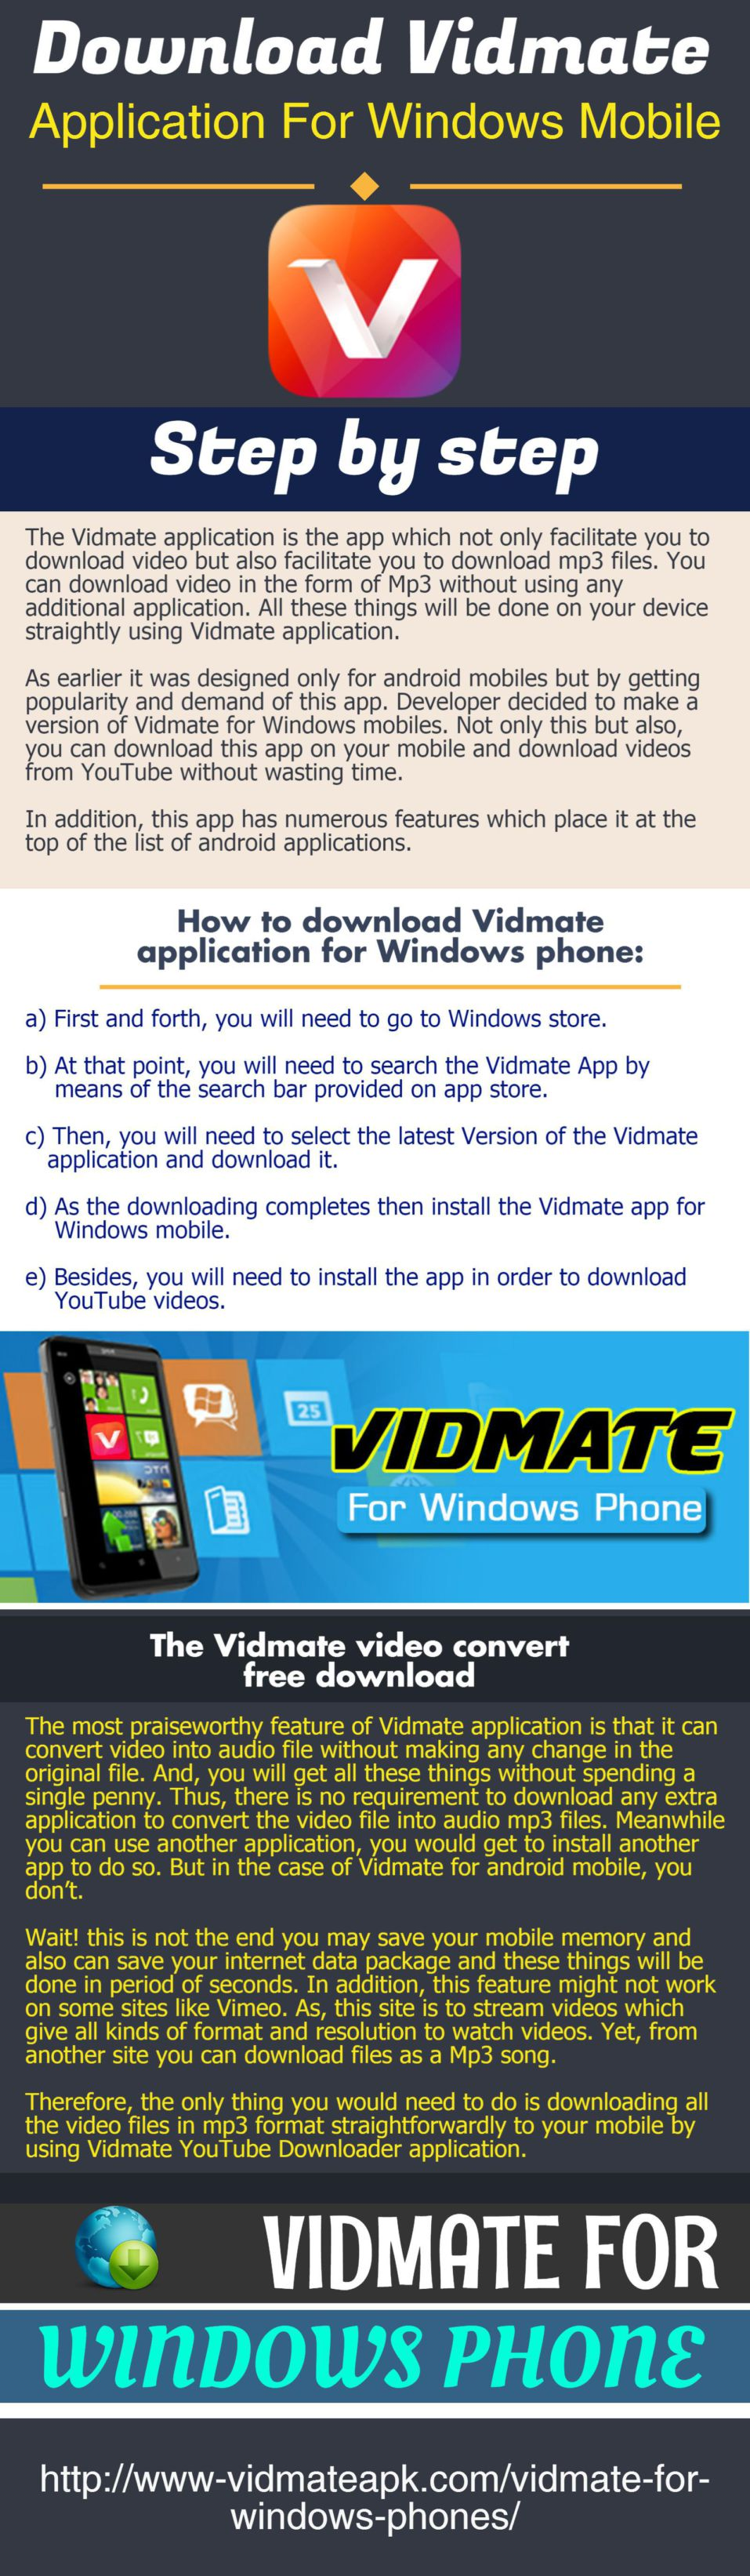 The Vidmate application is the app which not only facilitate